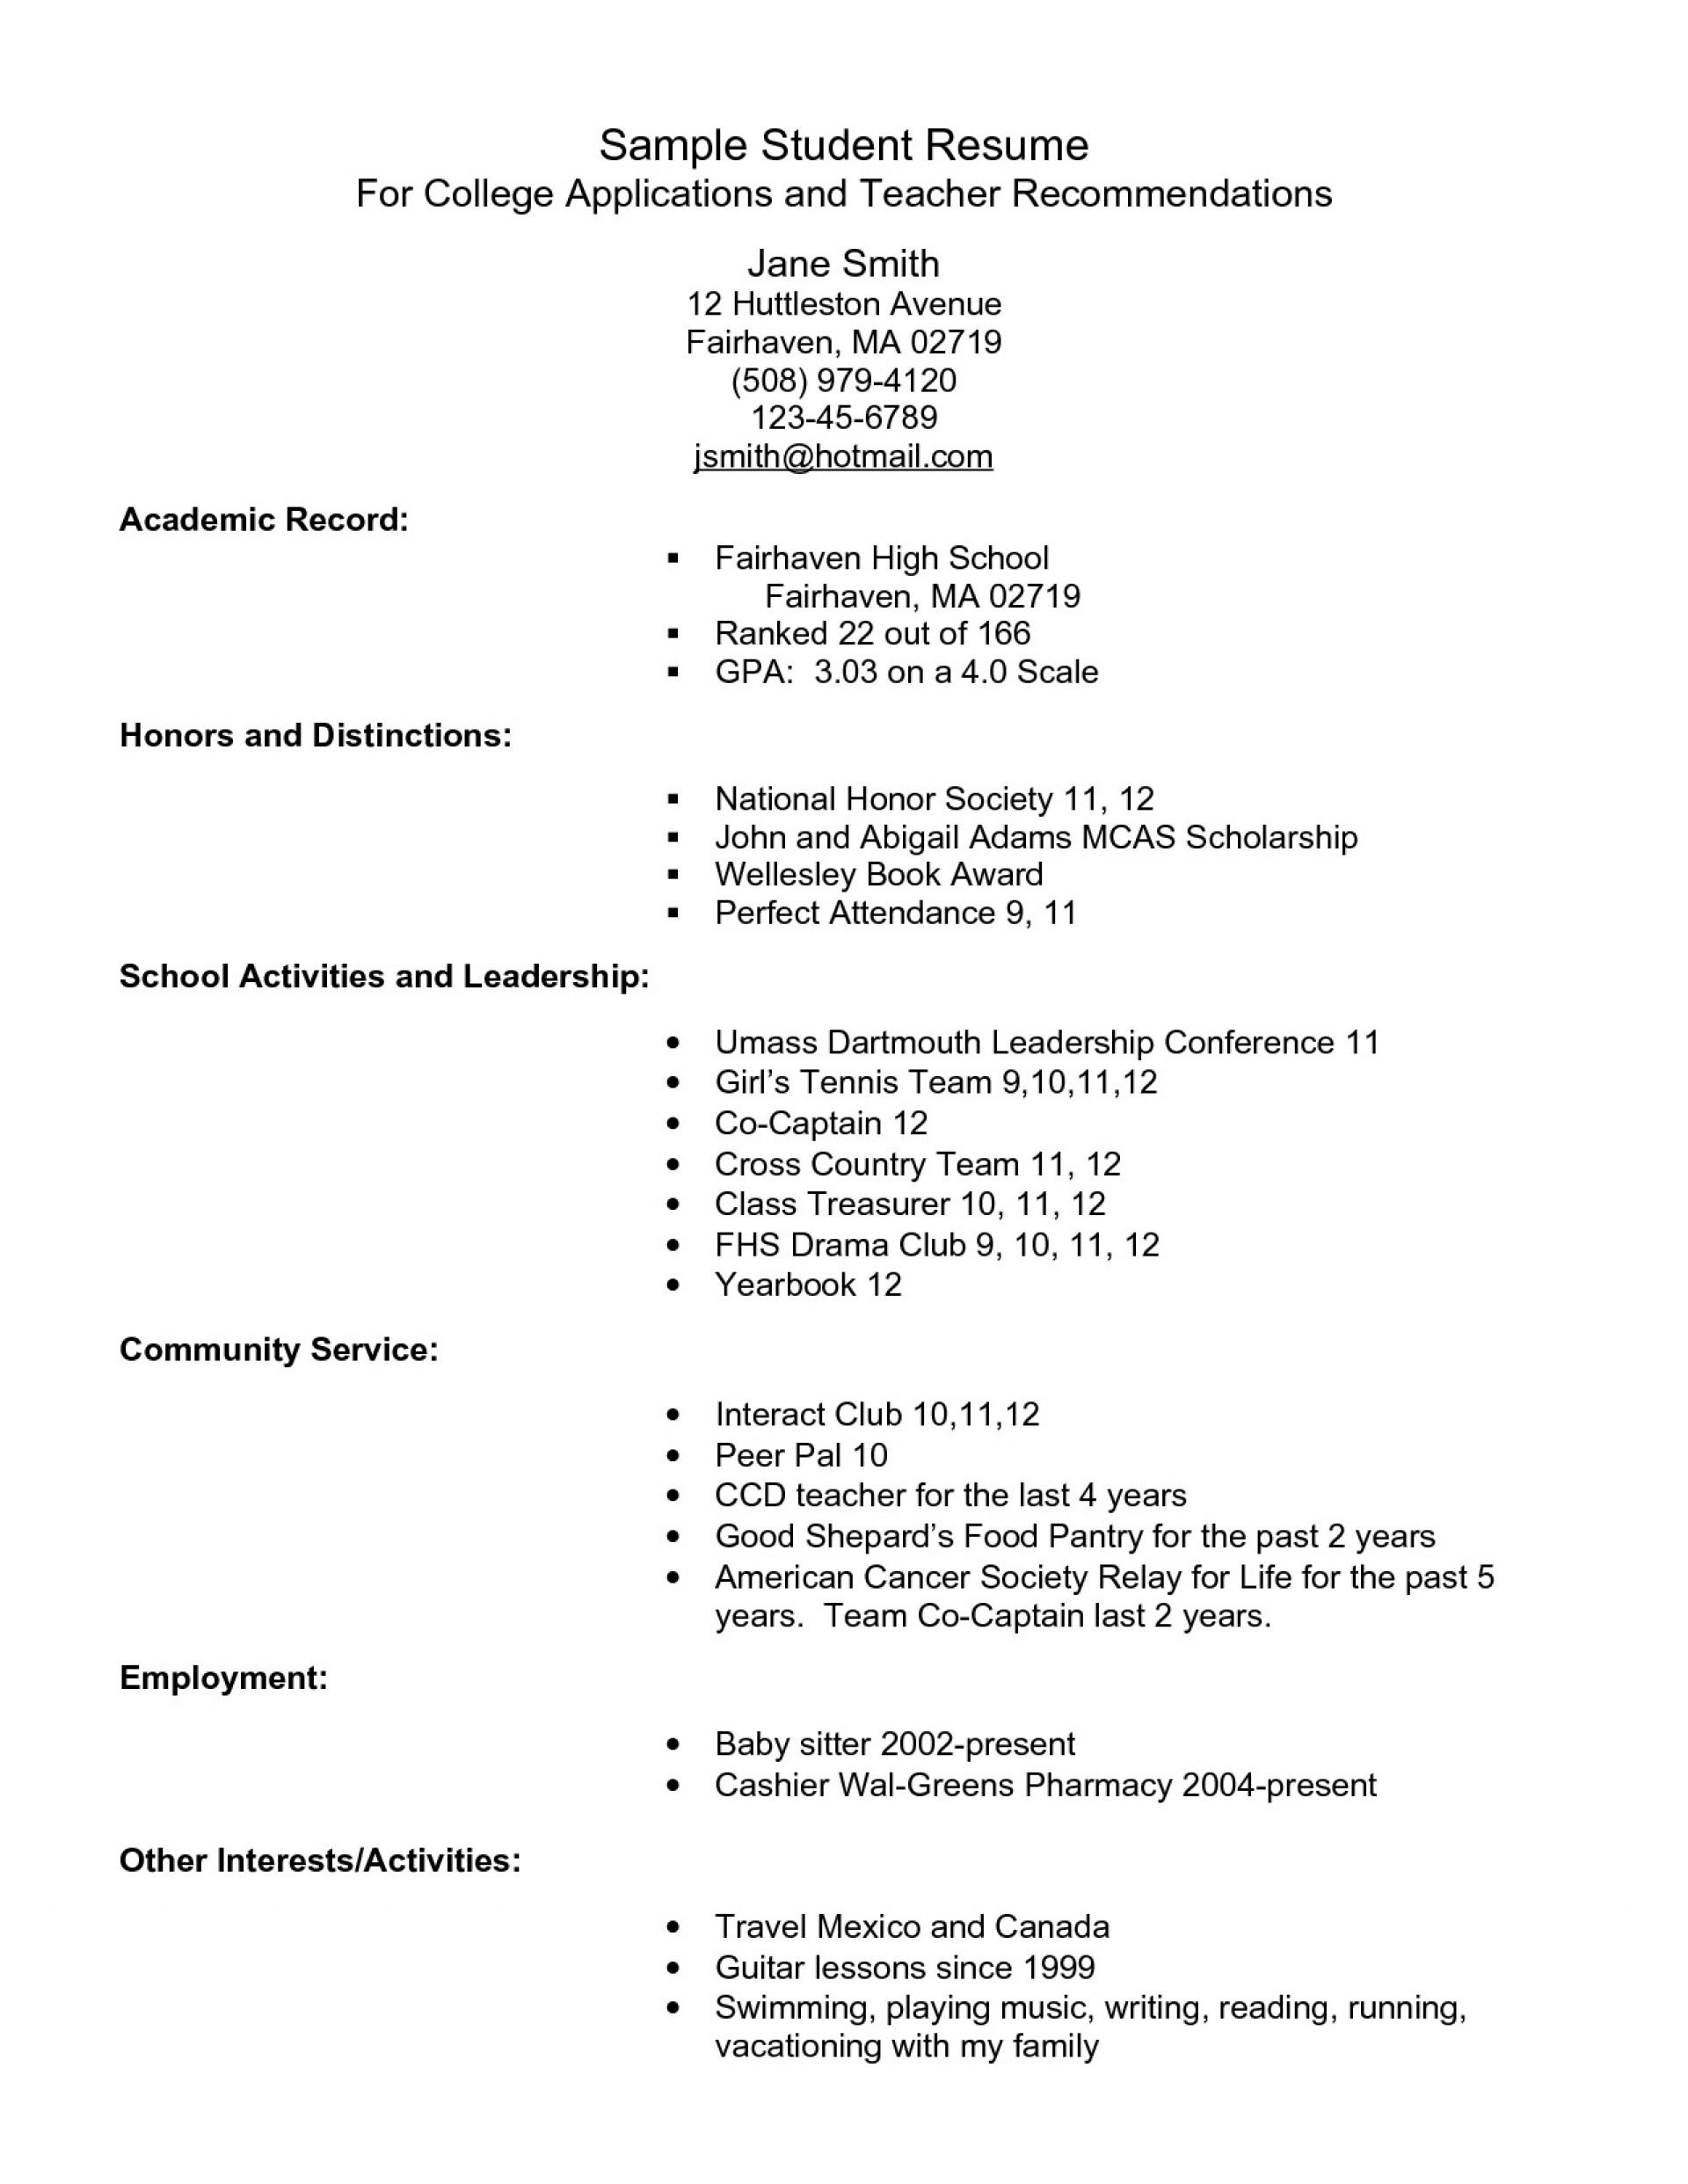 004 Impressive College Admission Resume Template Photo  Microsoft Word Application Download1920